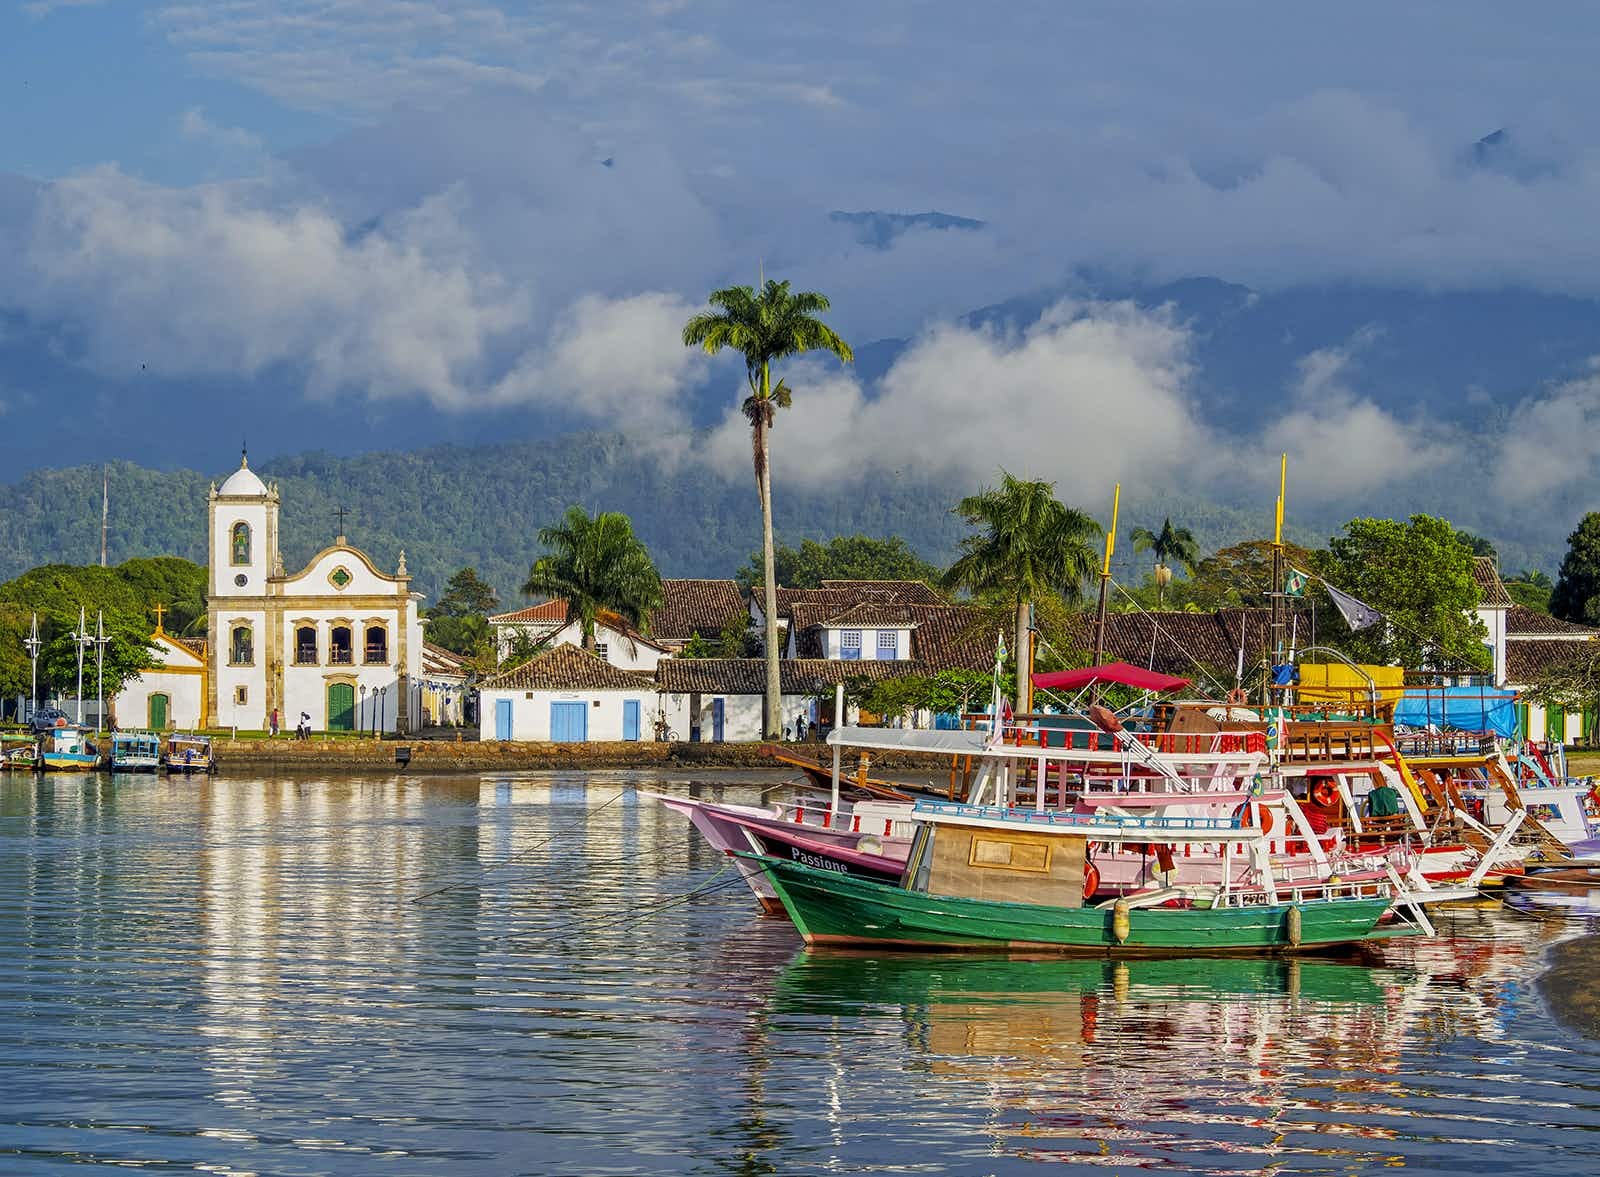 Find your chill in peaceful Paraty